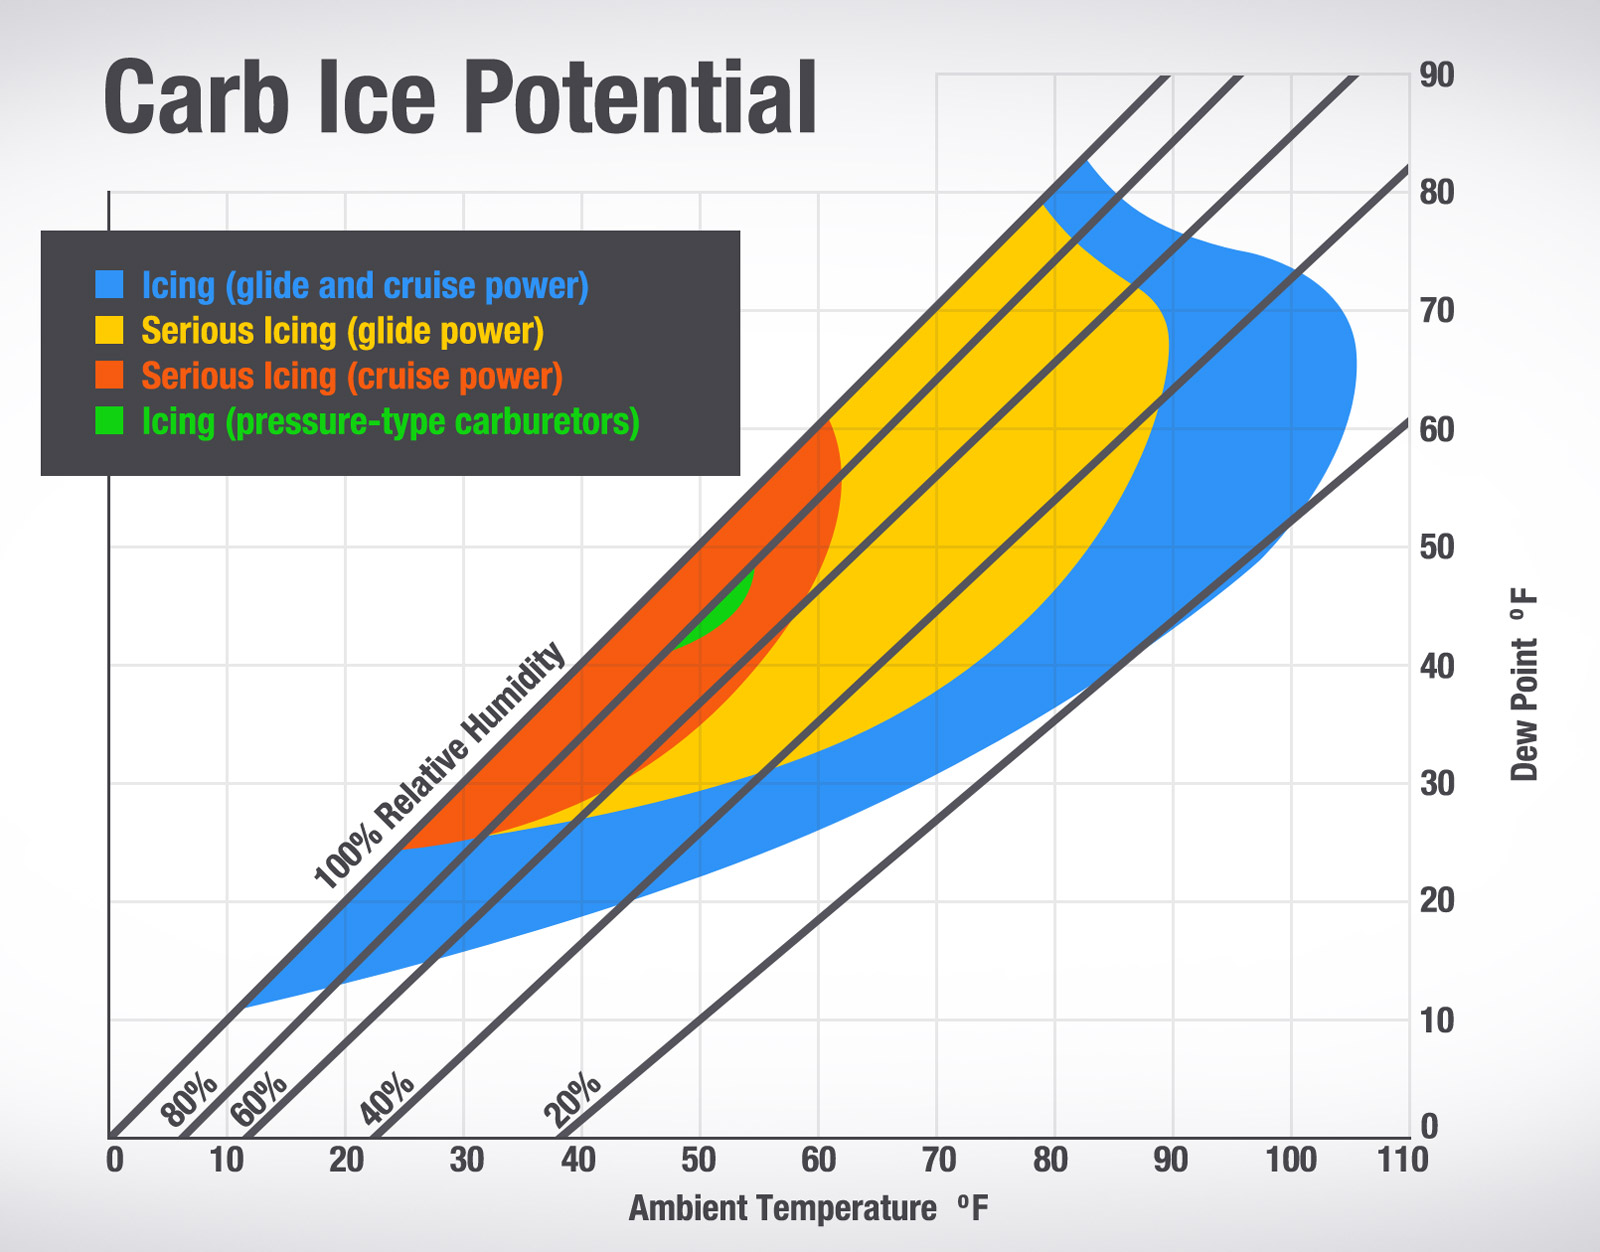 carb ice potential chart the pros and cons of carbureted vs fuel injected engines boldmethod